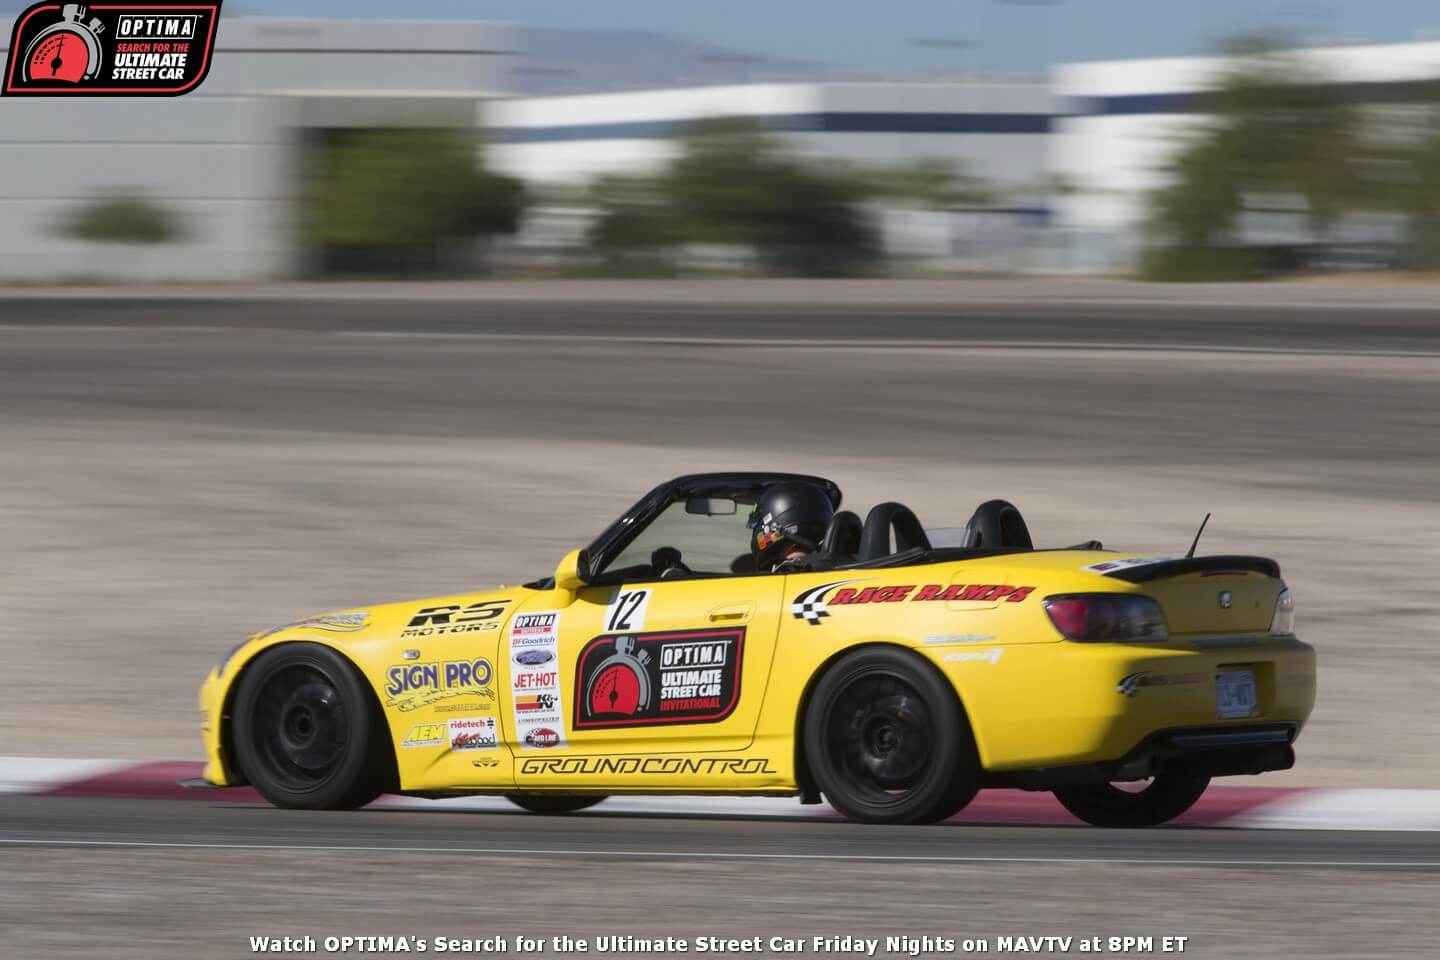 p-Andy-Smedegard-2001-Honda-S2000-OPTIMA-Ultimate-Street-Car-Invitational-2014-BFGoodrich-Hot-Lap-Challenge_25